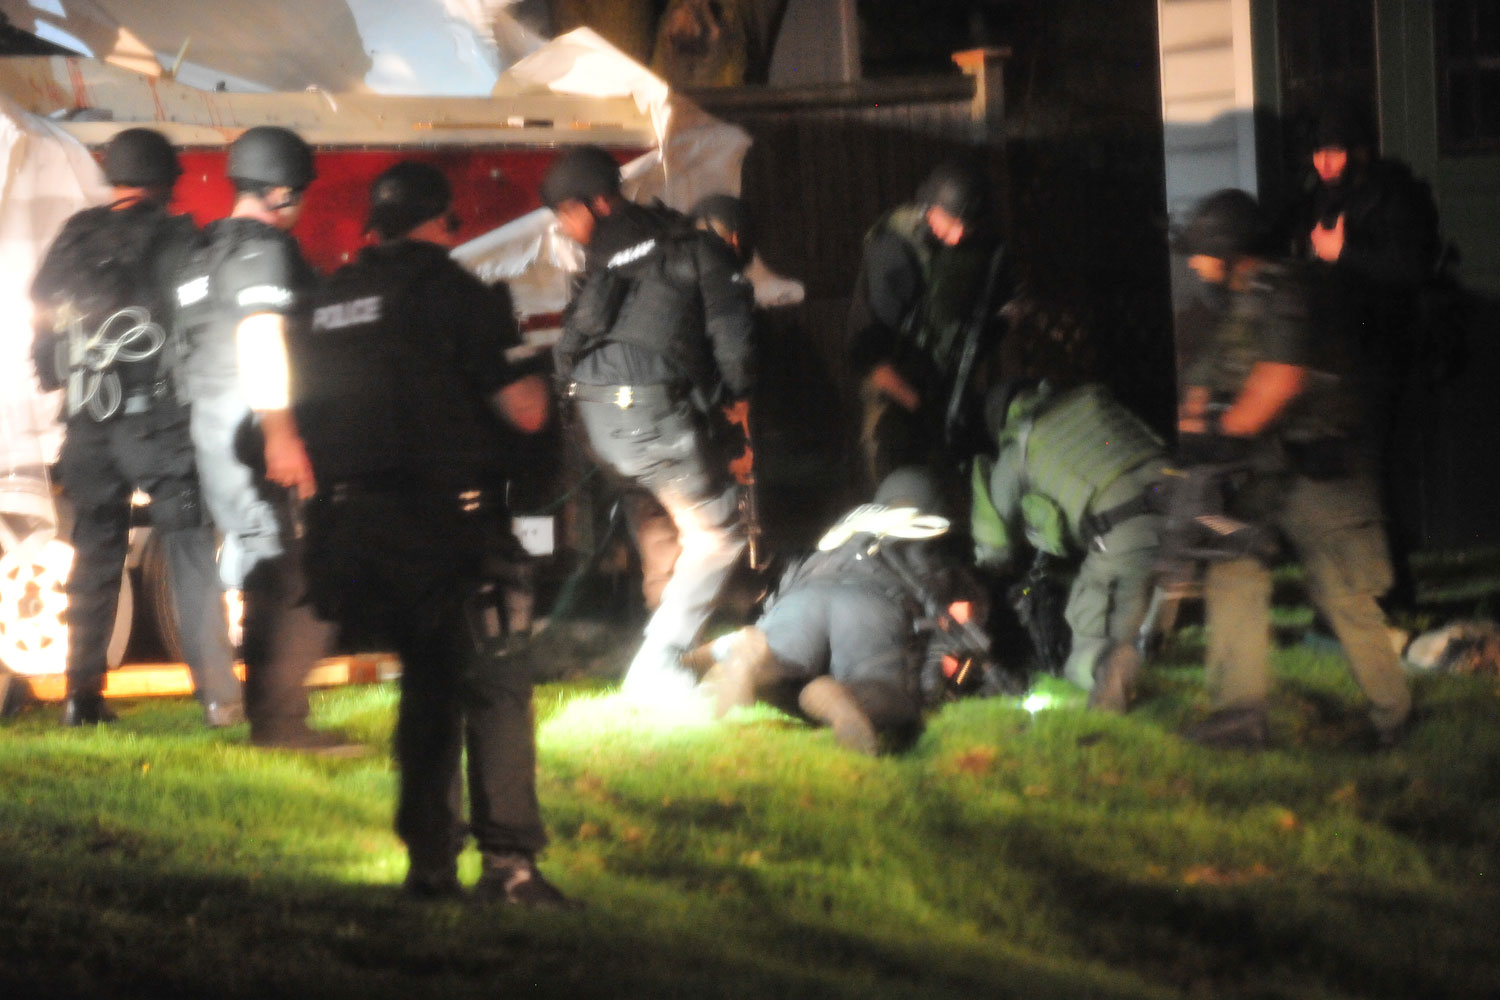 <b>7:40:31 p.m.</b> Tactical units remove Tsarnaev from the boat and place him in custody.